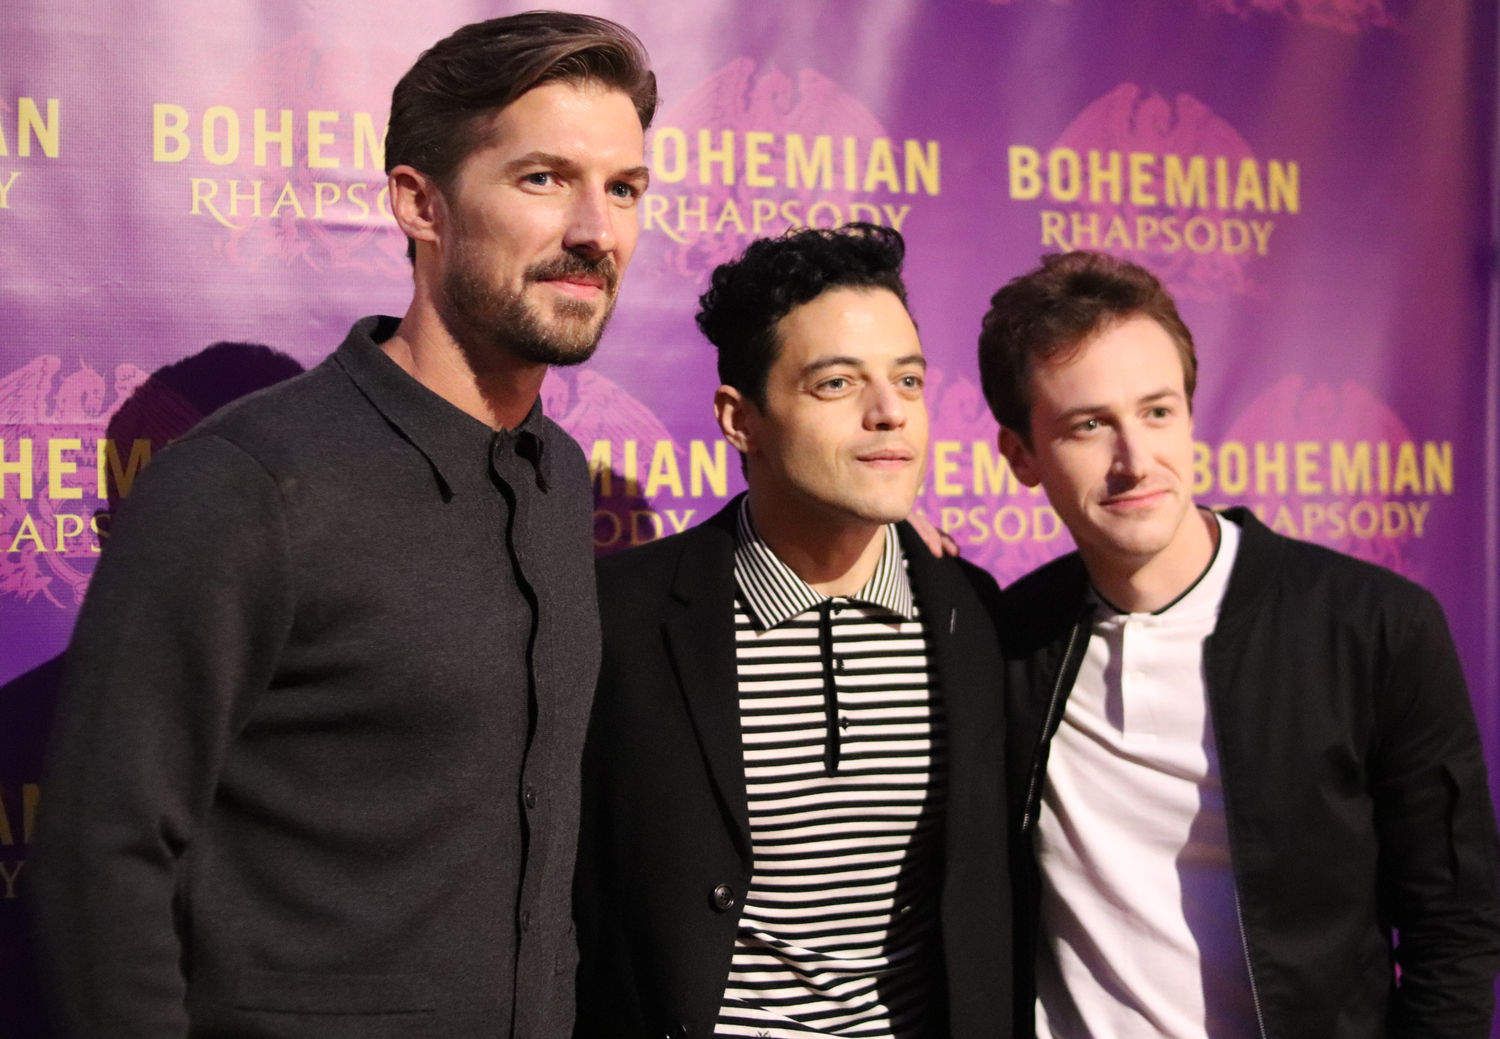 Stars of the new movie Bohemian Rhapsody Rami Malek, Gwilym Lee and Joseph Mazzello arrive at the Boston premiere of the movie on October 1st at AMC Boston Common which attracted many area college students.